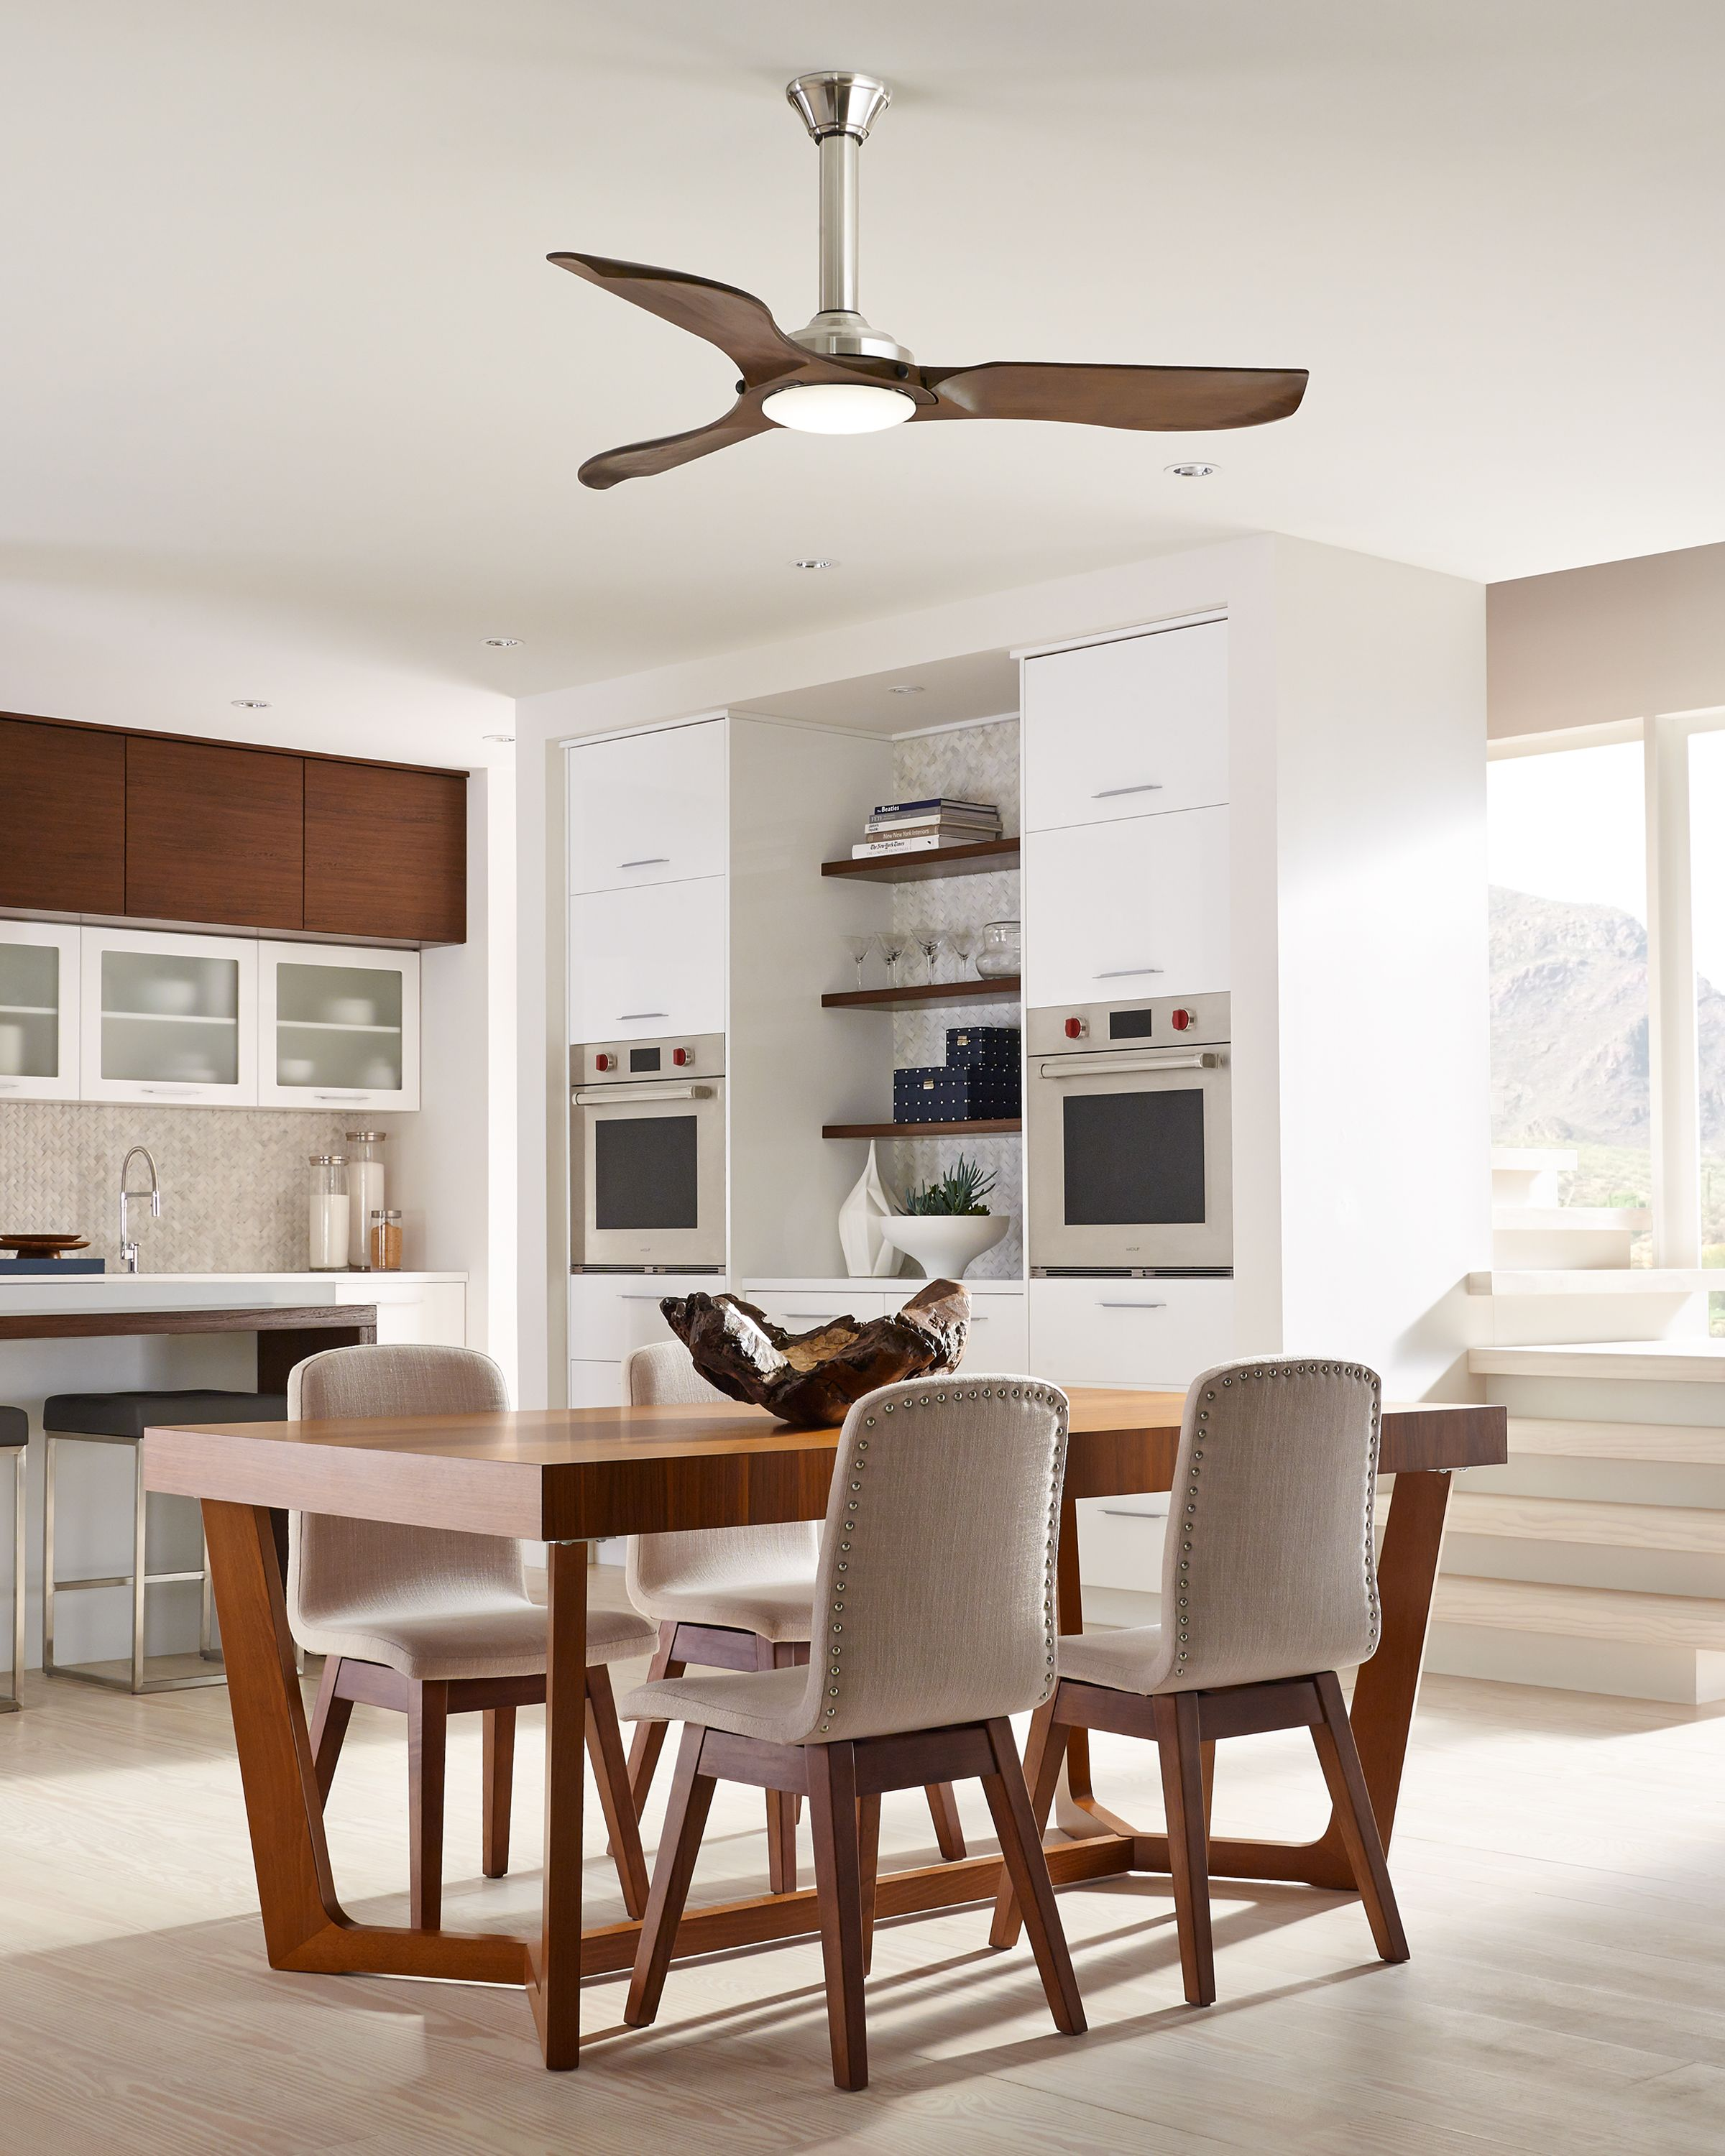 sleek and modern the 56 minimalist ceiling fan by monte carlo has rh pinterest com decorative ceiling fans for dining room modern ceiling fans for dining room